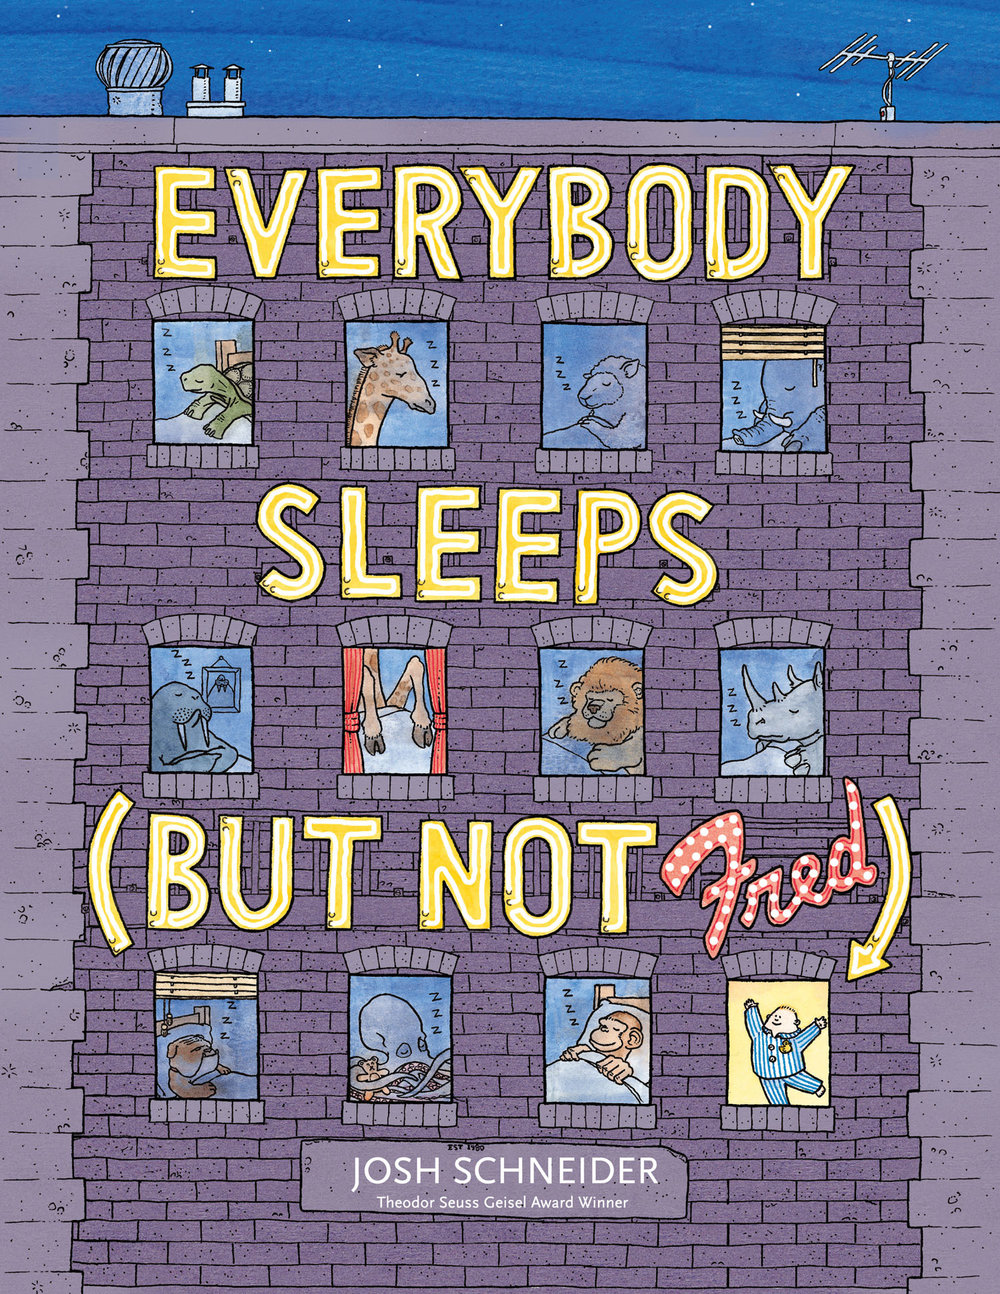 Schneider, Josh 2015_04 - EVERYBODY SLEEPS (BUT NOT FRED) - PB - RLM PR.jpg